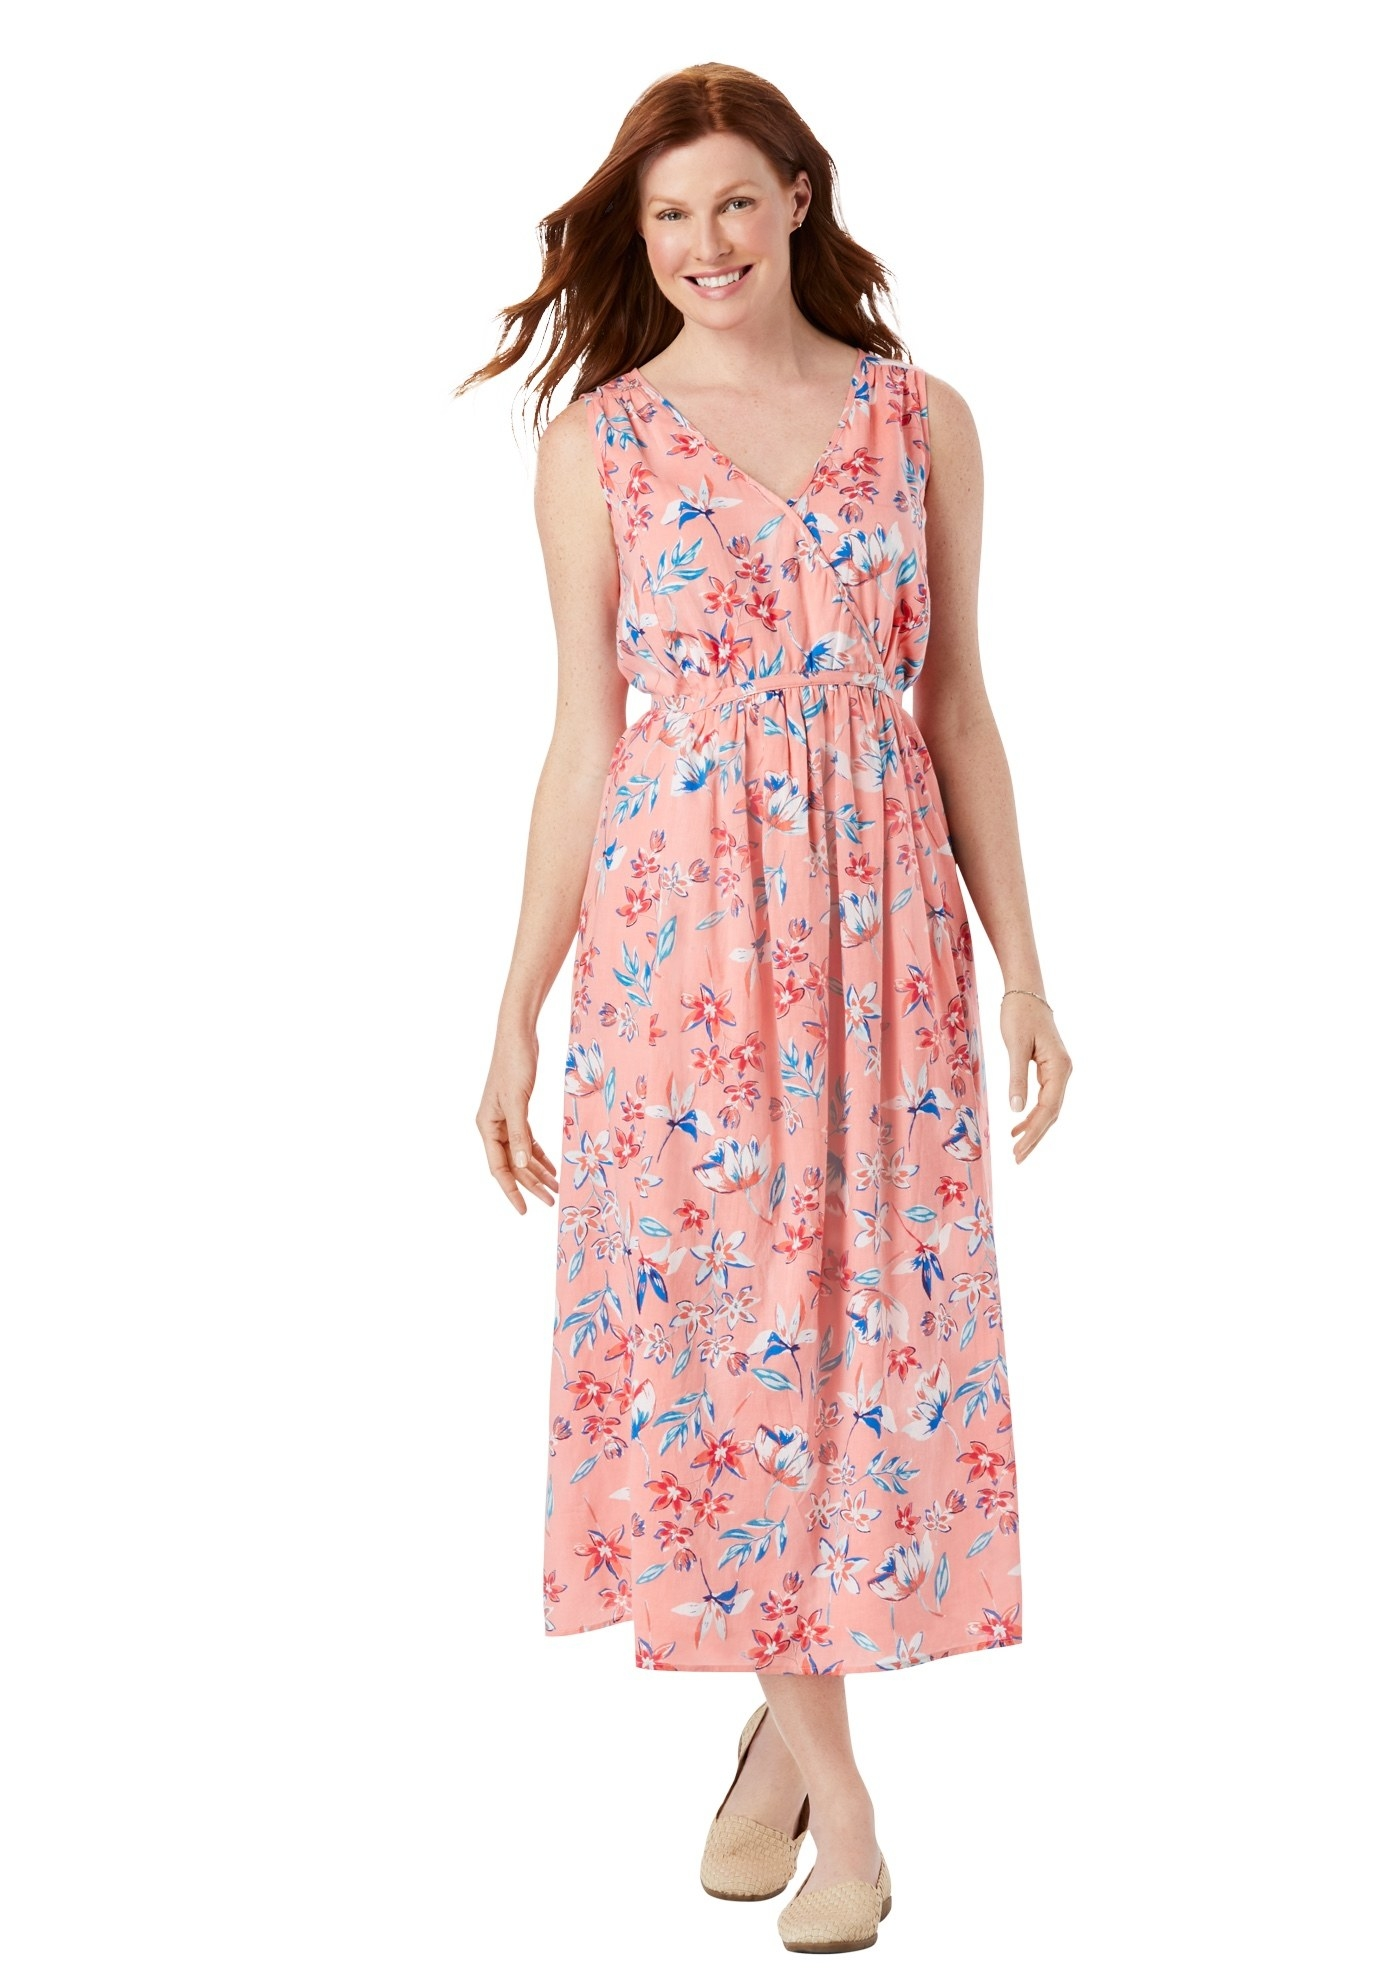 model in pink and blue floral maxi dress